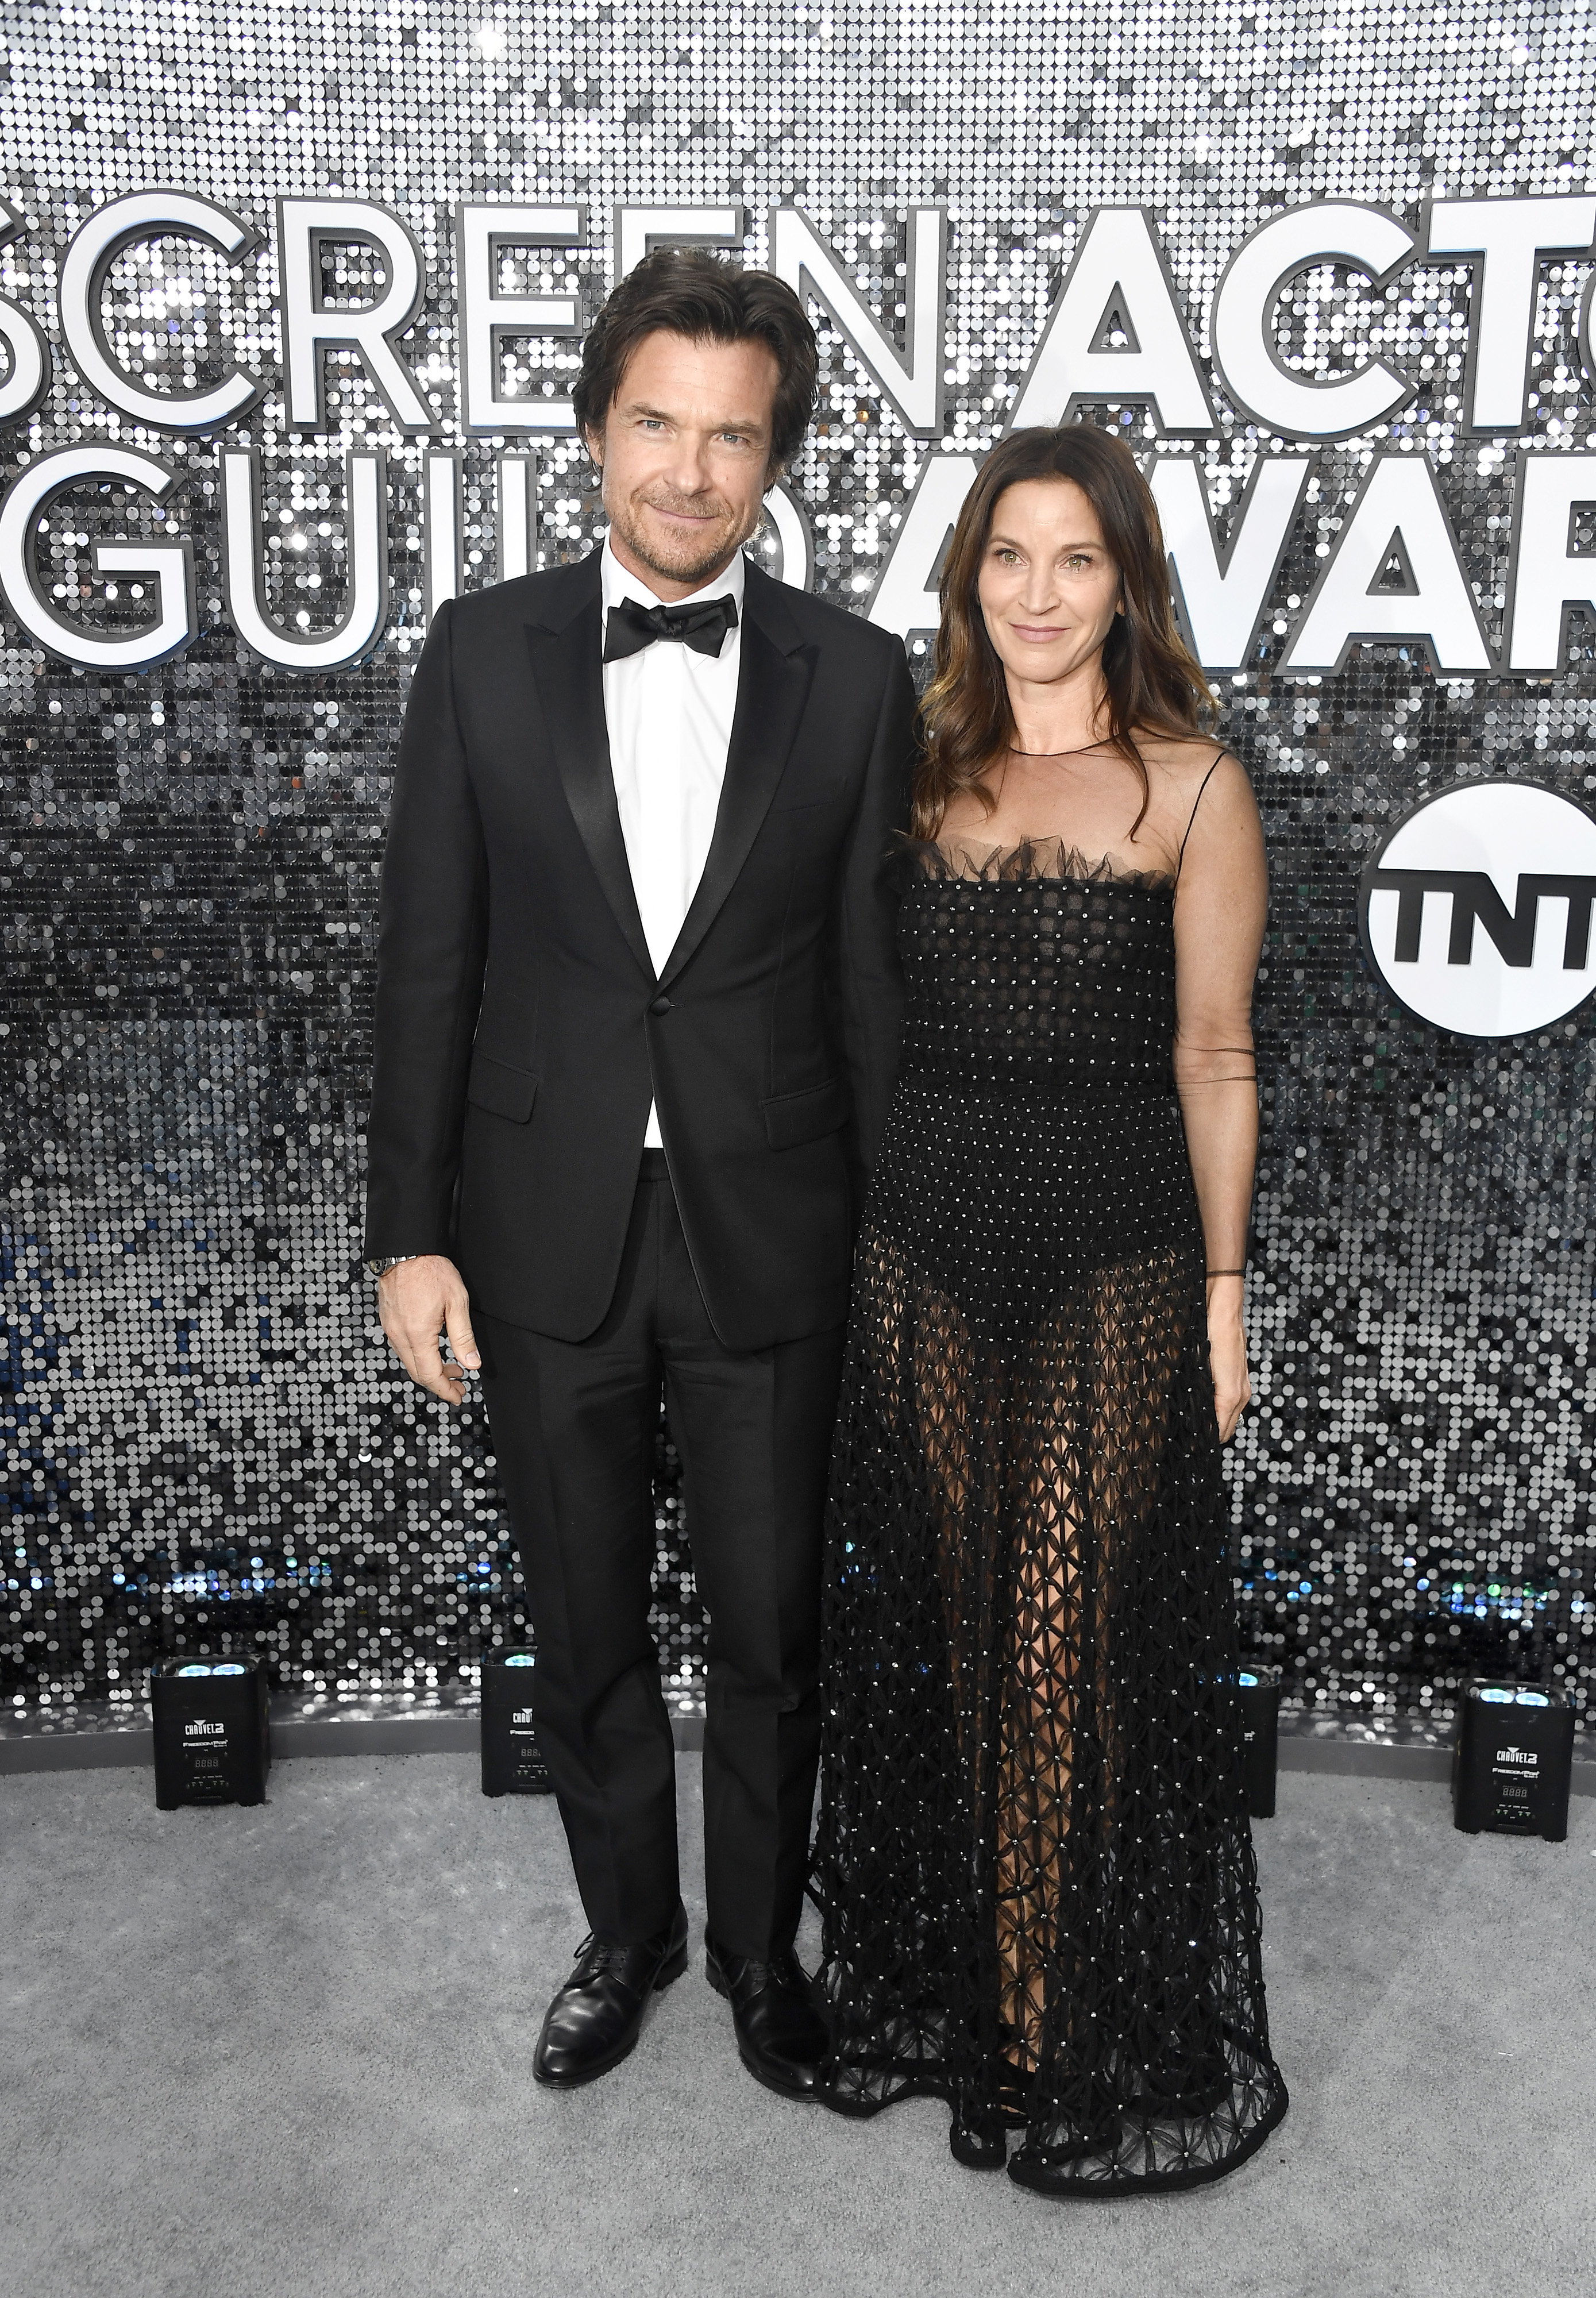 LOS ANGELES, CALIFORNIA - JANUARY 19: (L-R) Jason Bateman and Amanda Anka attend the 26th Annual Screen ActorsGuild Awards at The Shrine Auditorium on January 19, 2020 in Los Angeles, California. (Photo by Frazer Harrison/Getty Images)